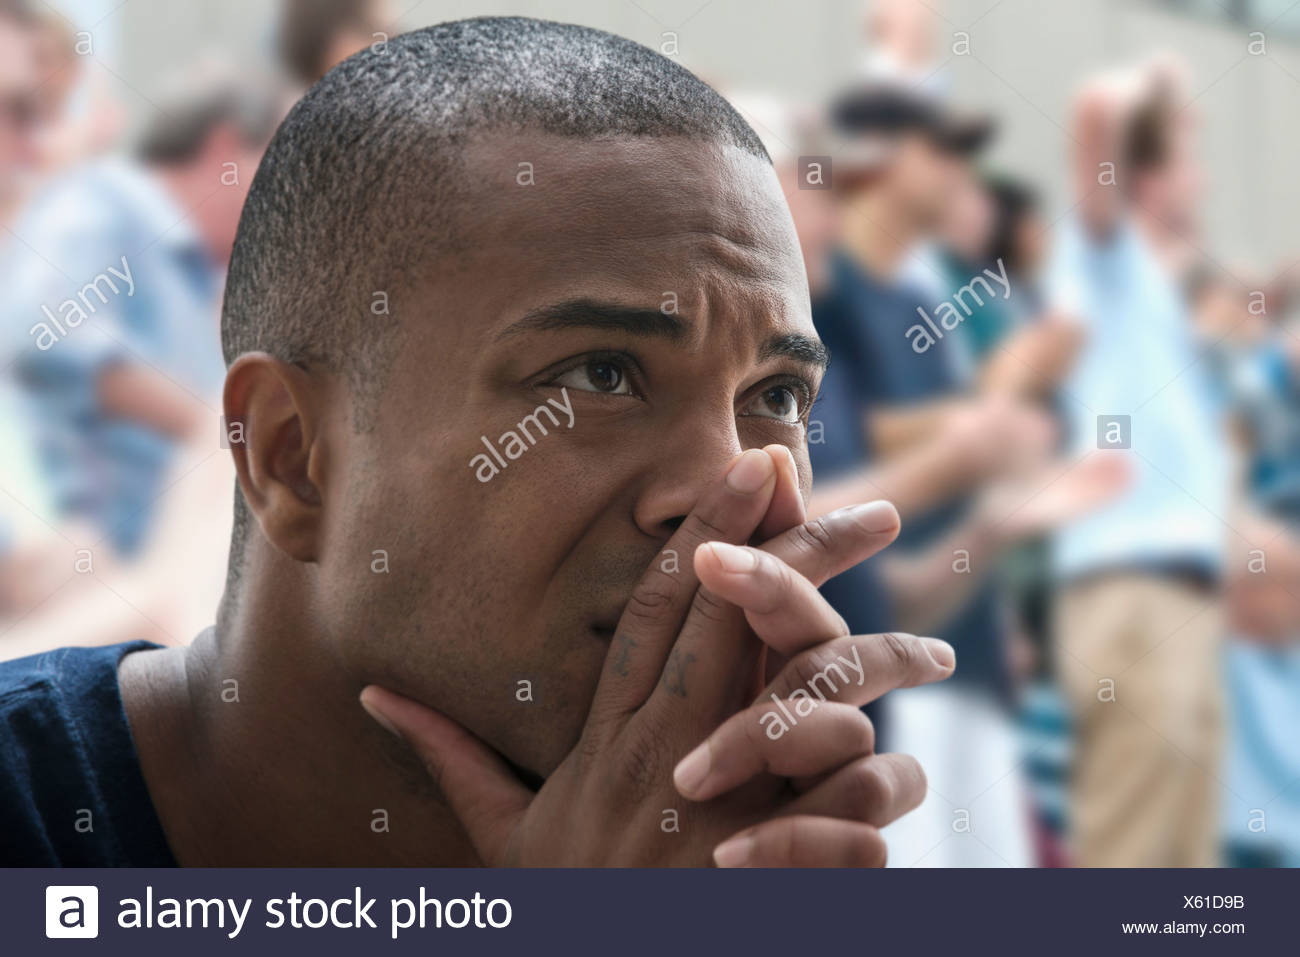 Tense man at sports game - Stock Image